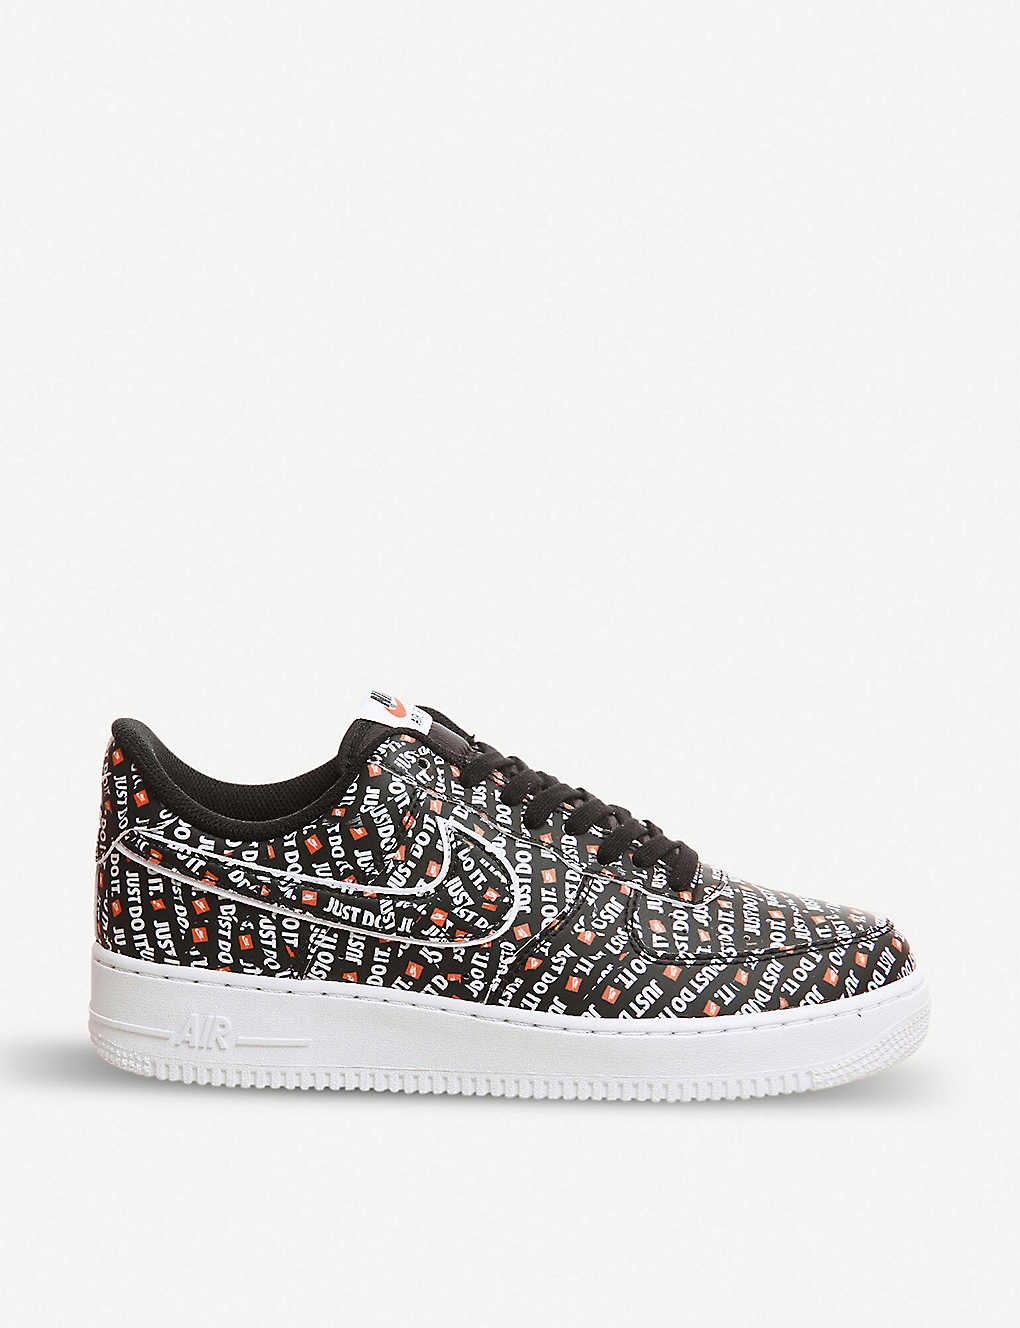 f332a9c32937d NIKE - Air Force 1 07 Just Do It leather trainers   Selfridges.com